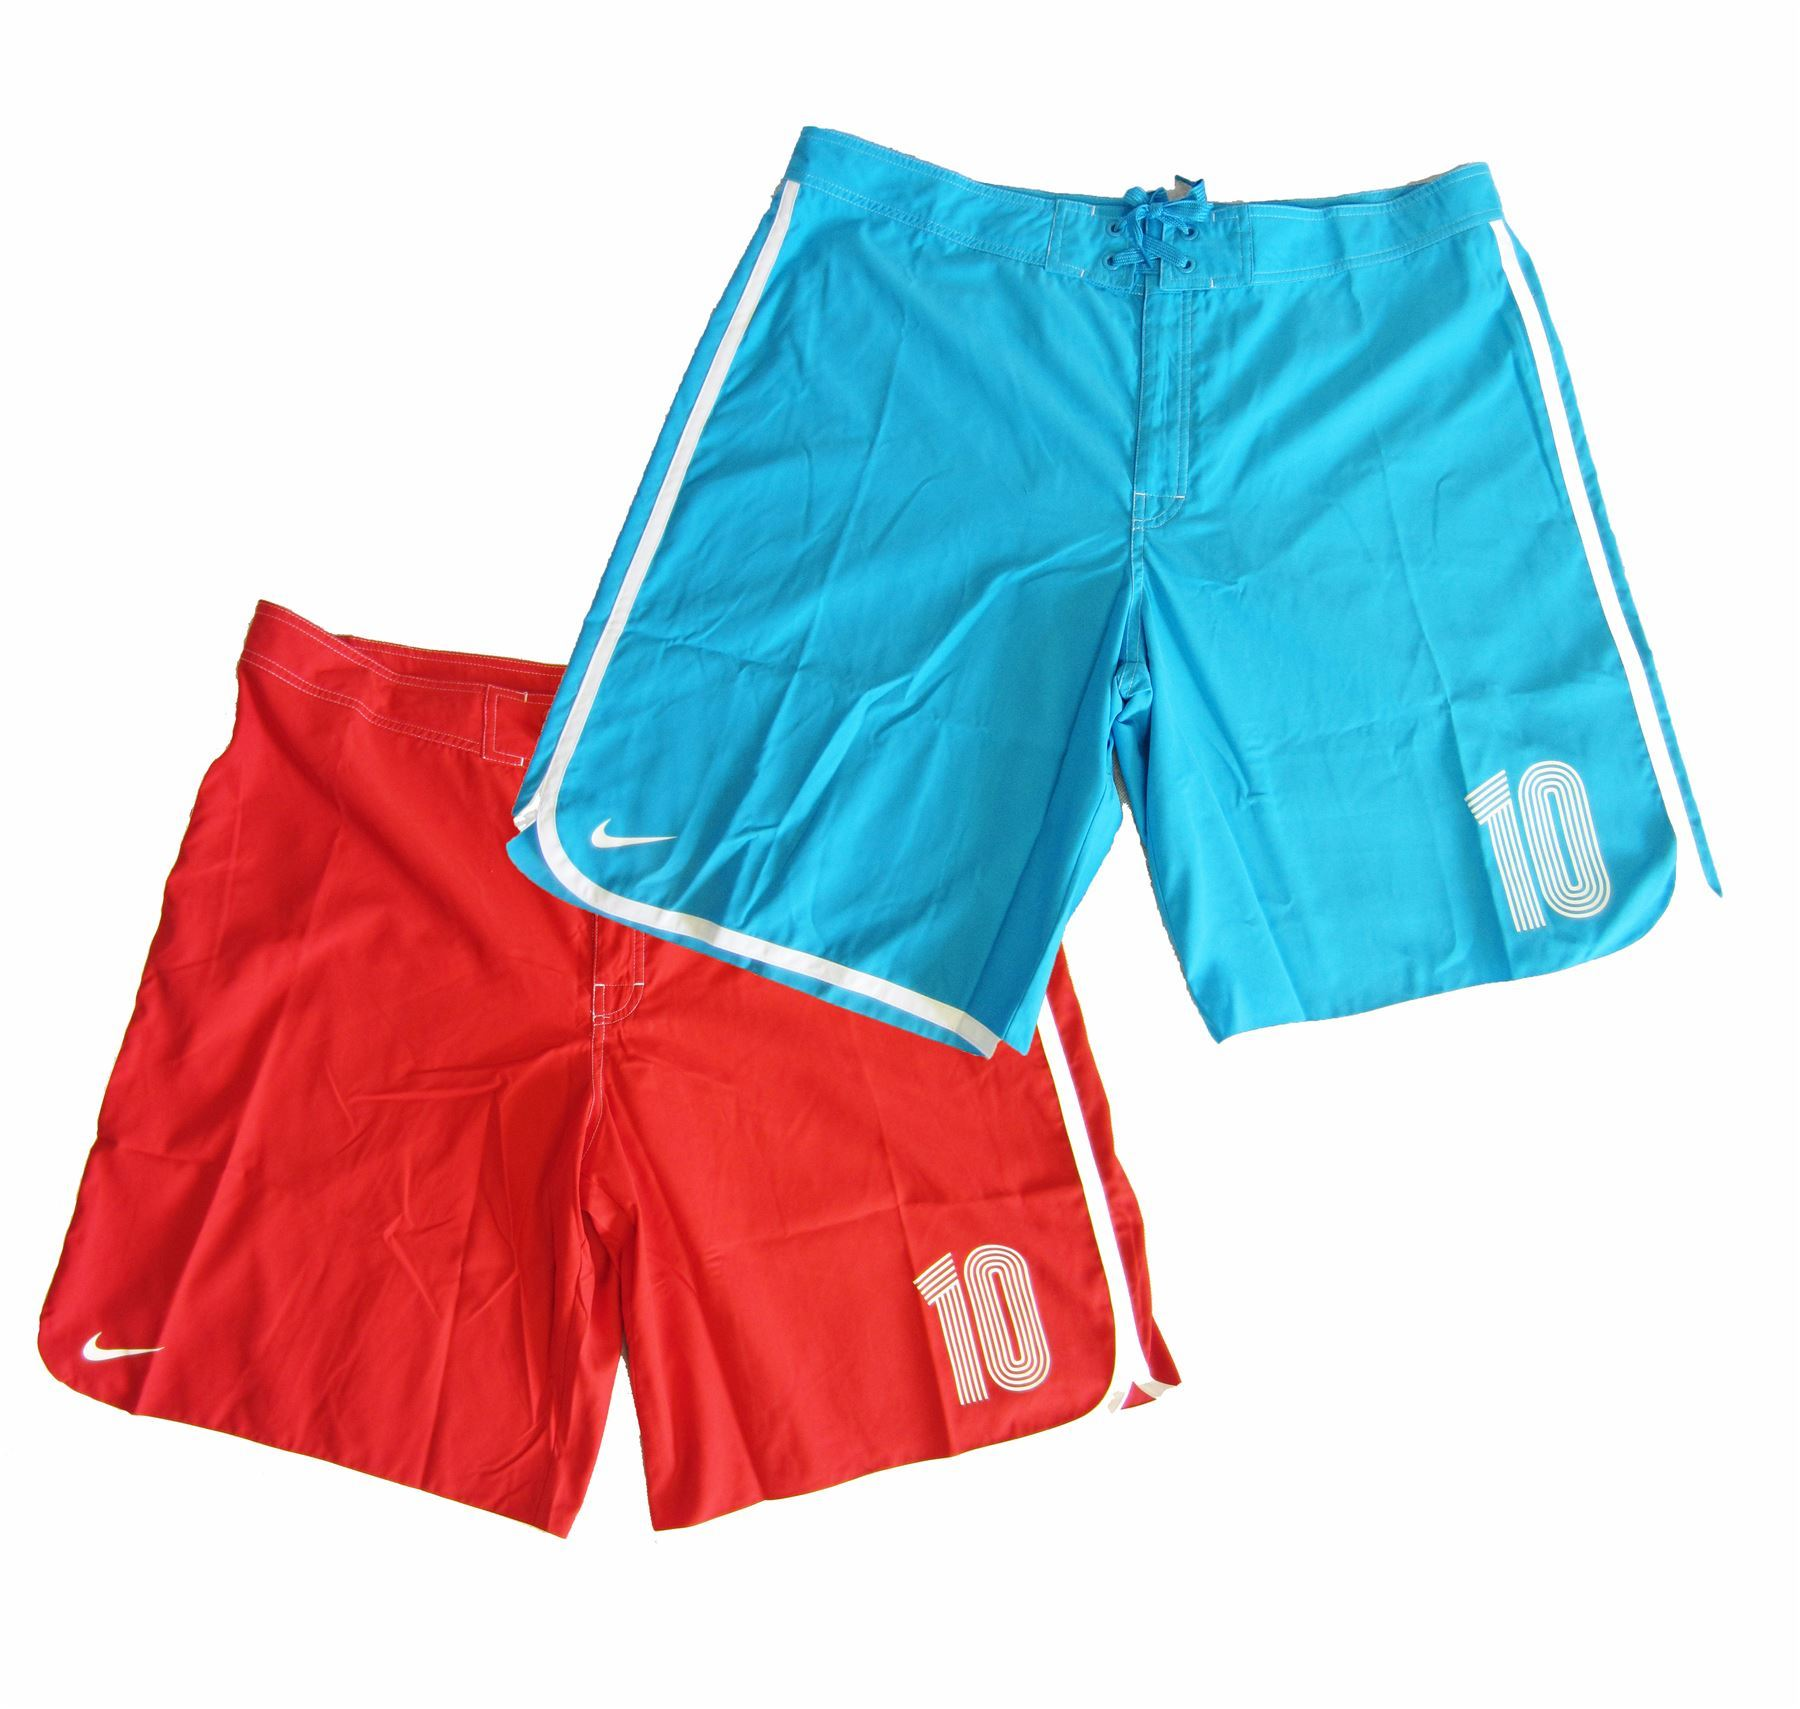 NIKE BOARD SHORTS Football Soccer Casual Active Beach ...